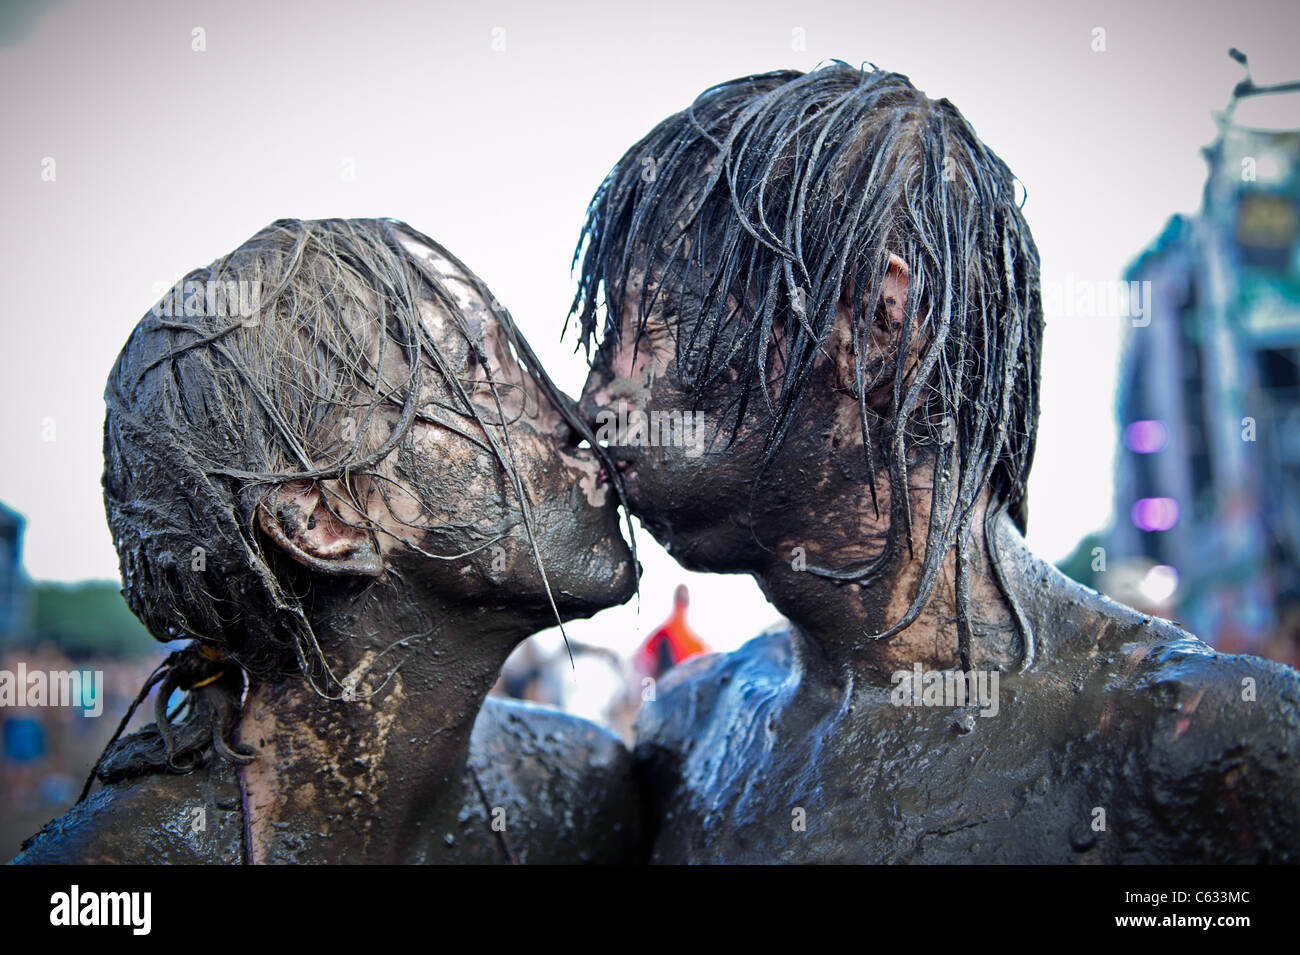 young couple kissing covered in mud at the Przystanek Woodstock - Europe's largest open air festival in Kostrzyn, - Stock Image